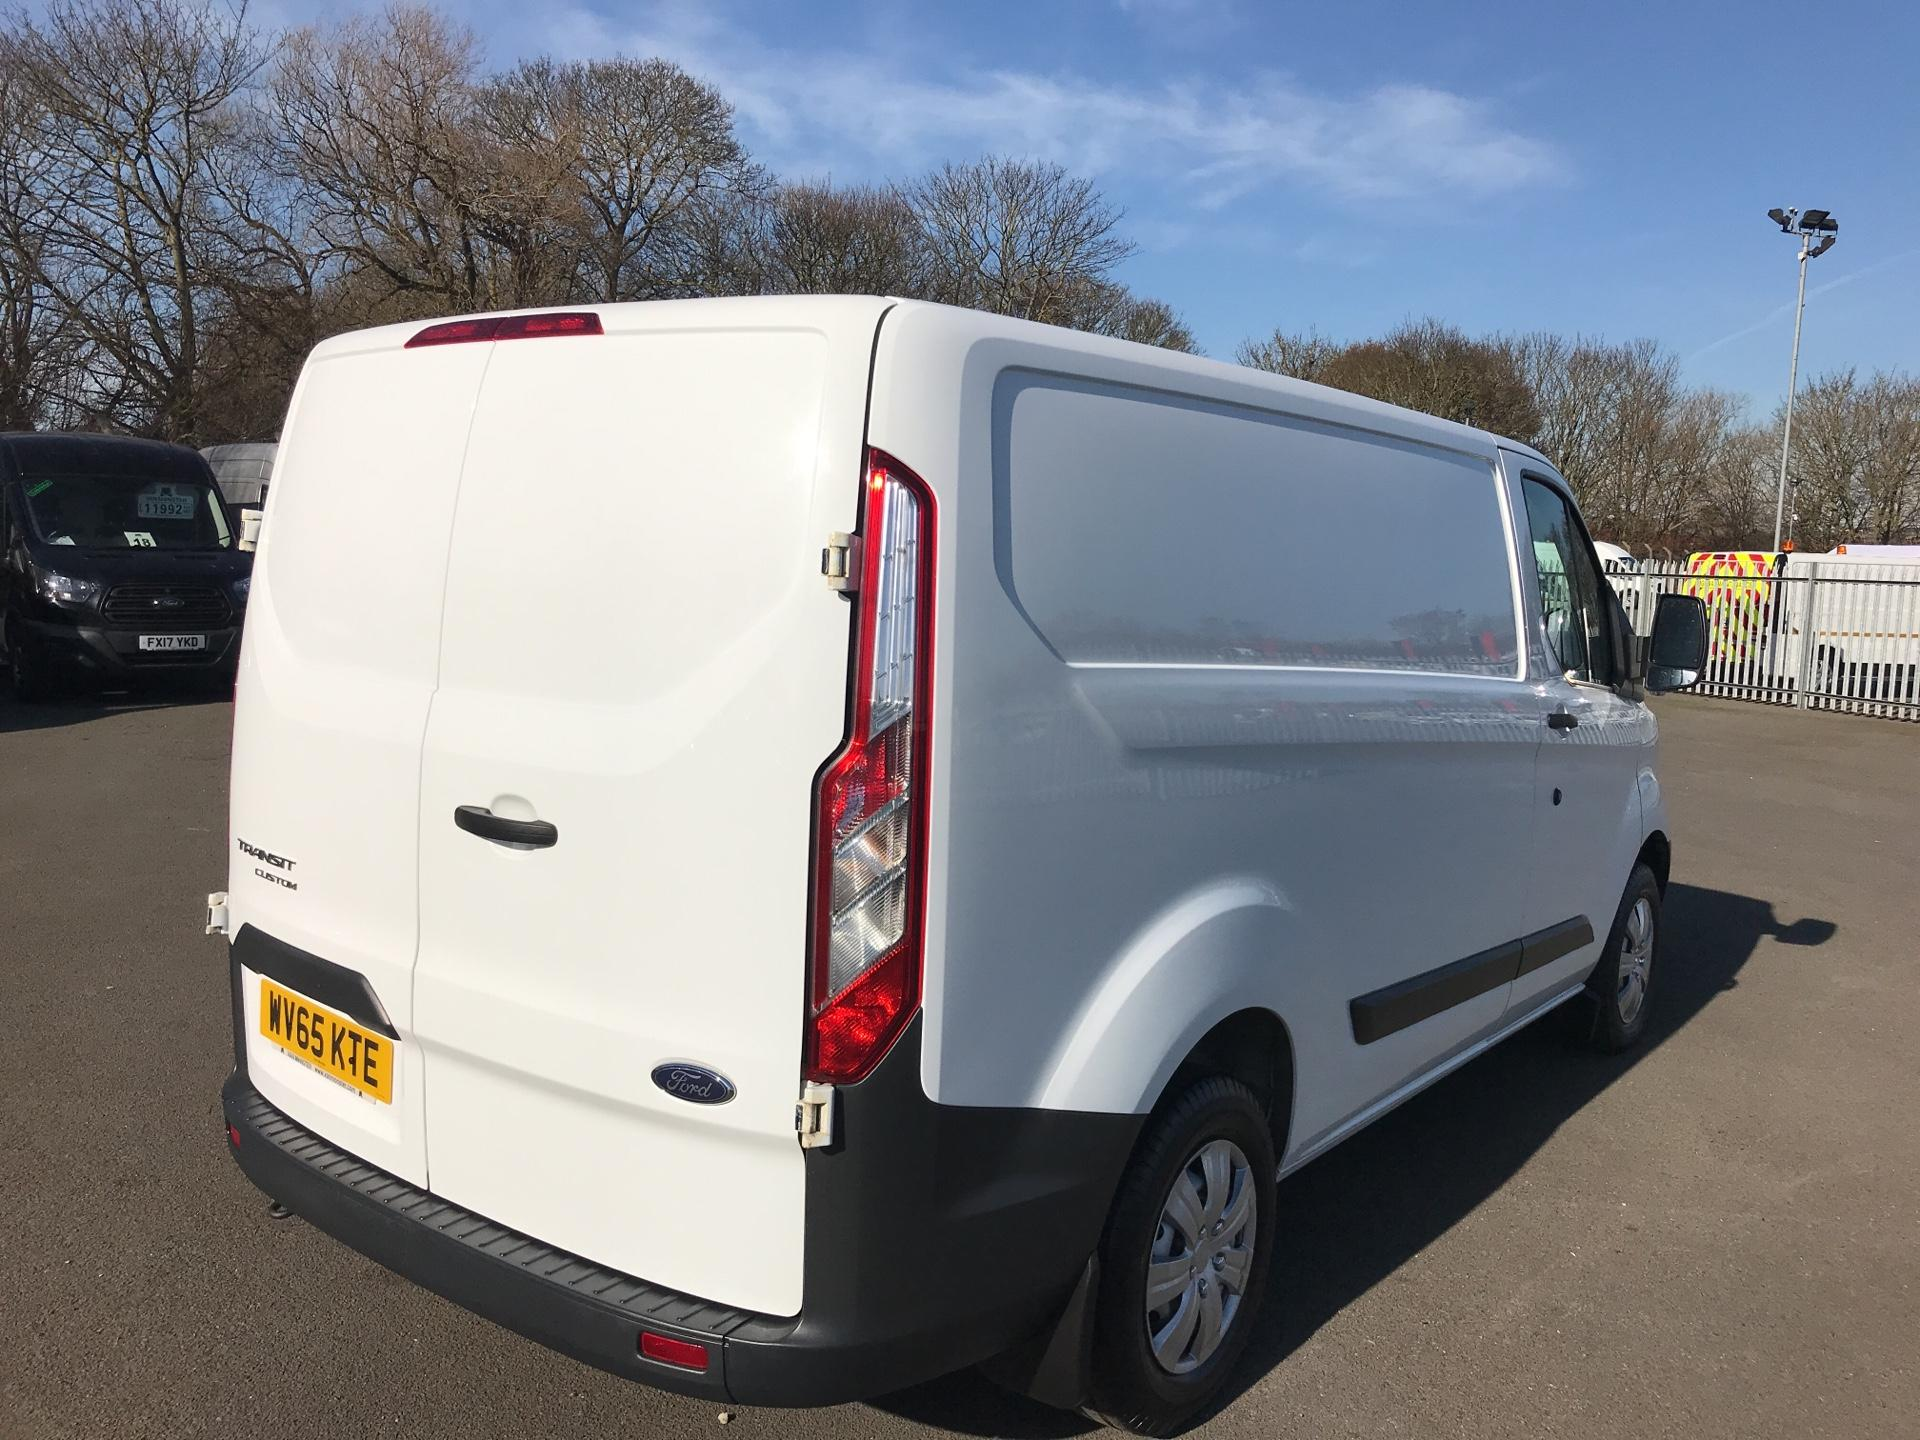 2015 Ford Transit Custom 290 L1 DIESEL FWD 2.2  TDCI 100PS LOW ROOF VAN EURO 5 (WV65KTE) Thumbnail 3